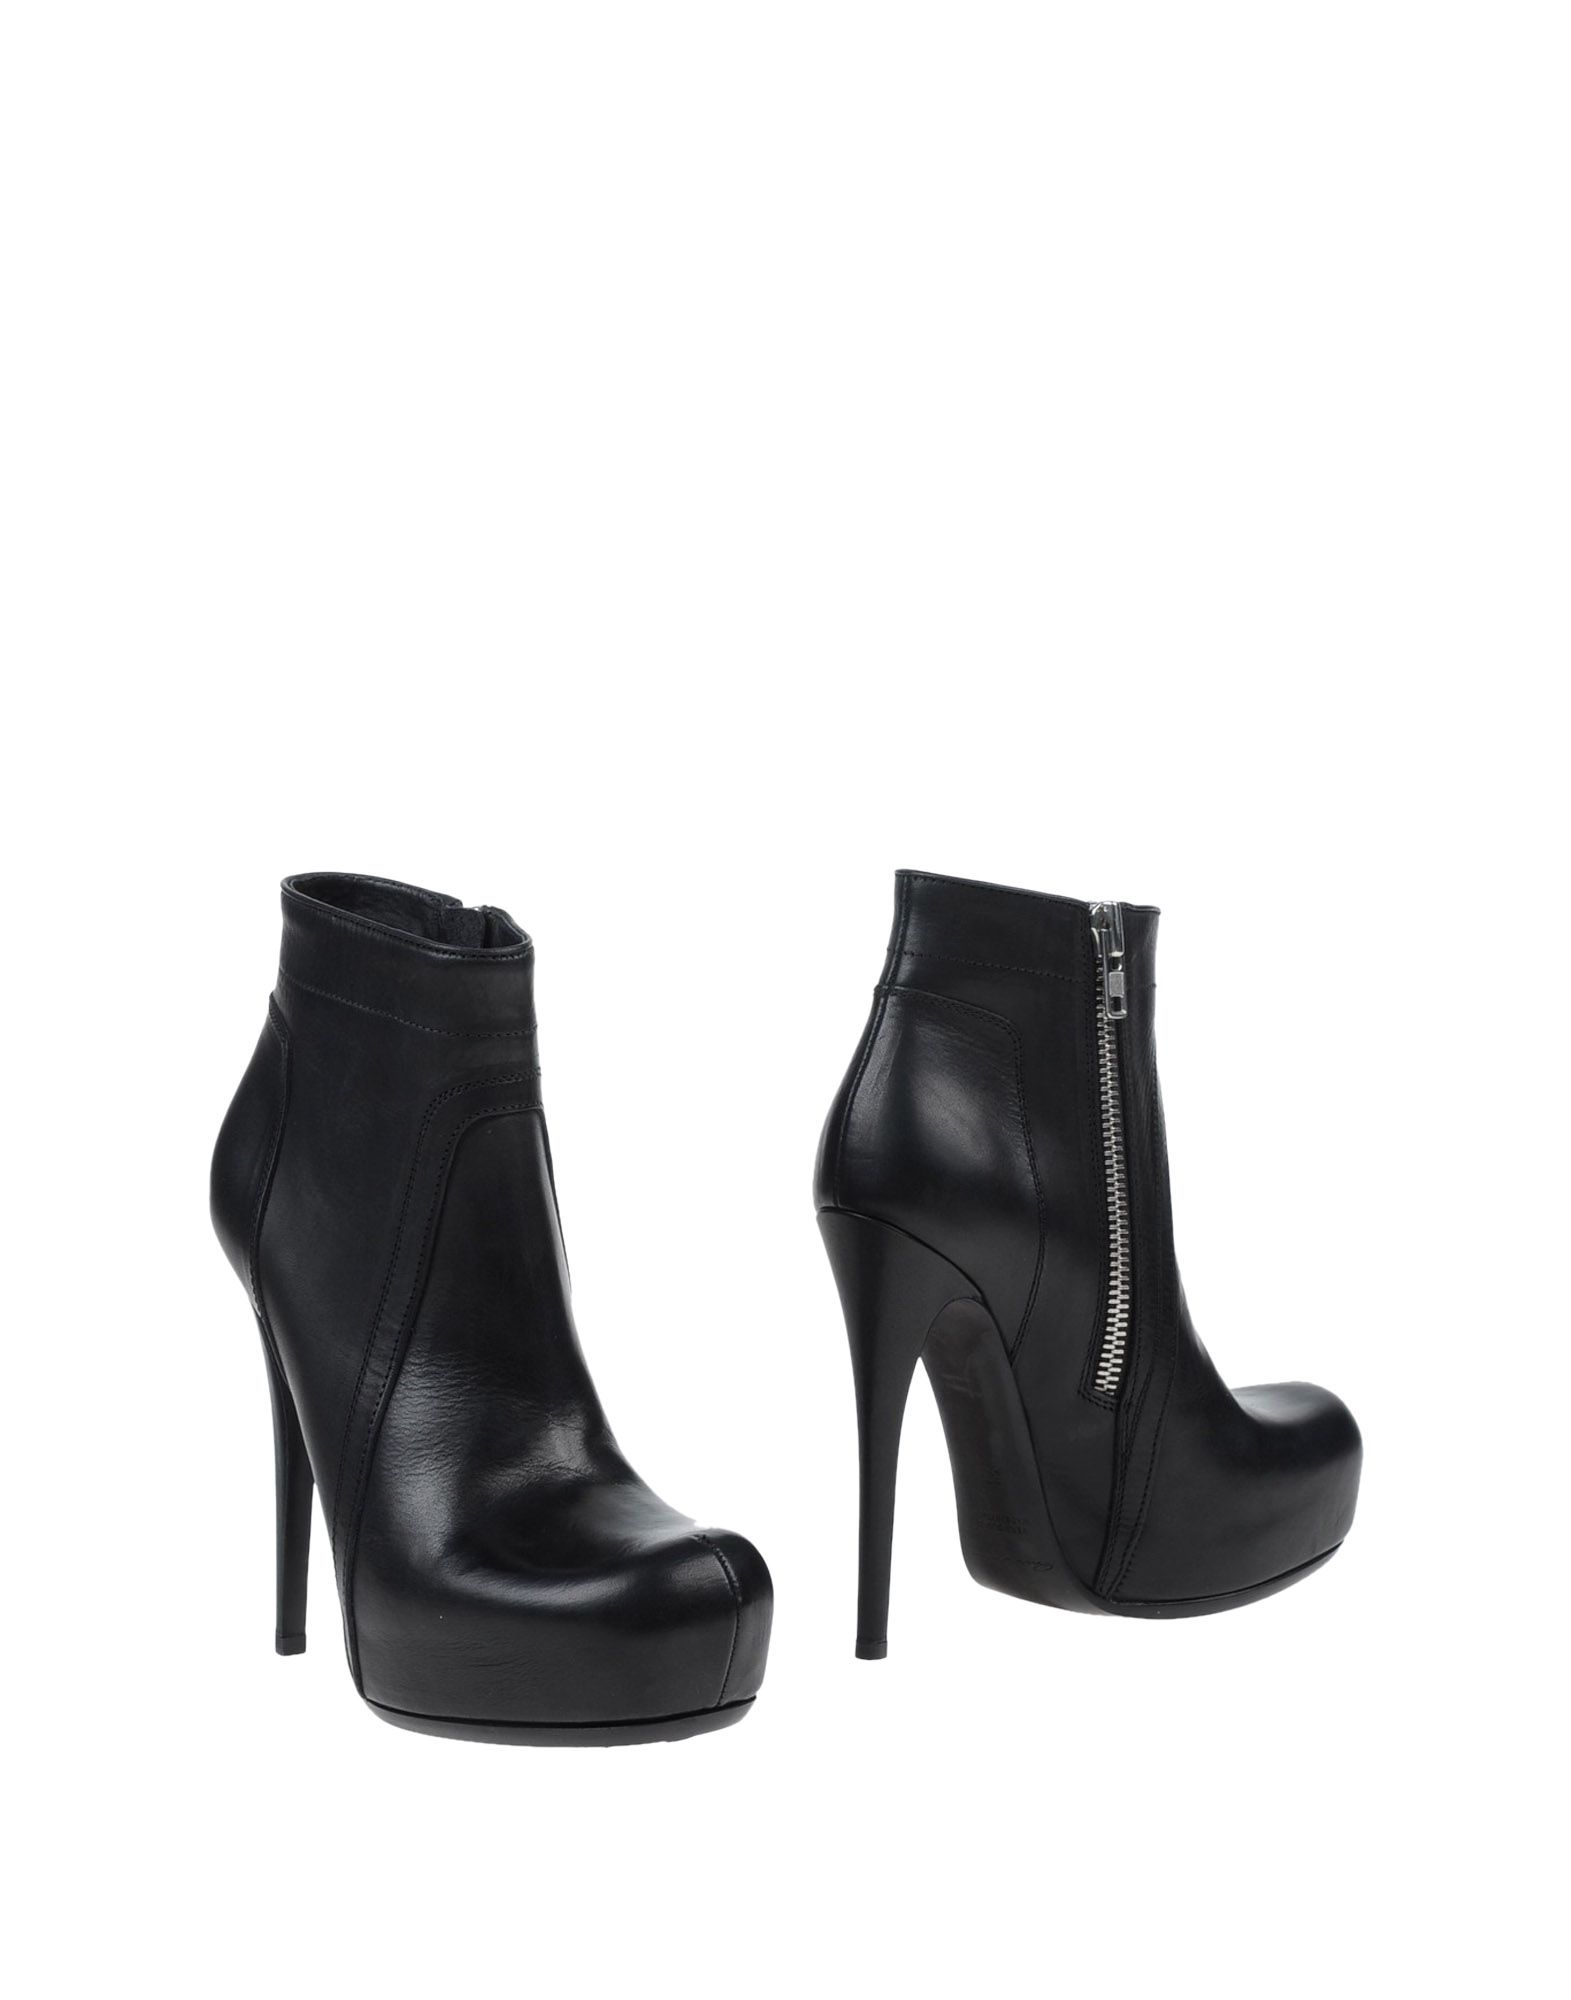 Bottine Rick Owens Femme - Bottines Rick Owens sur